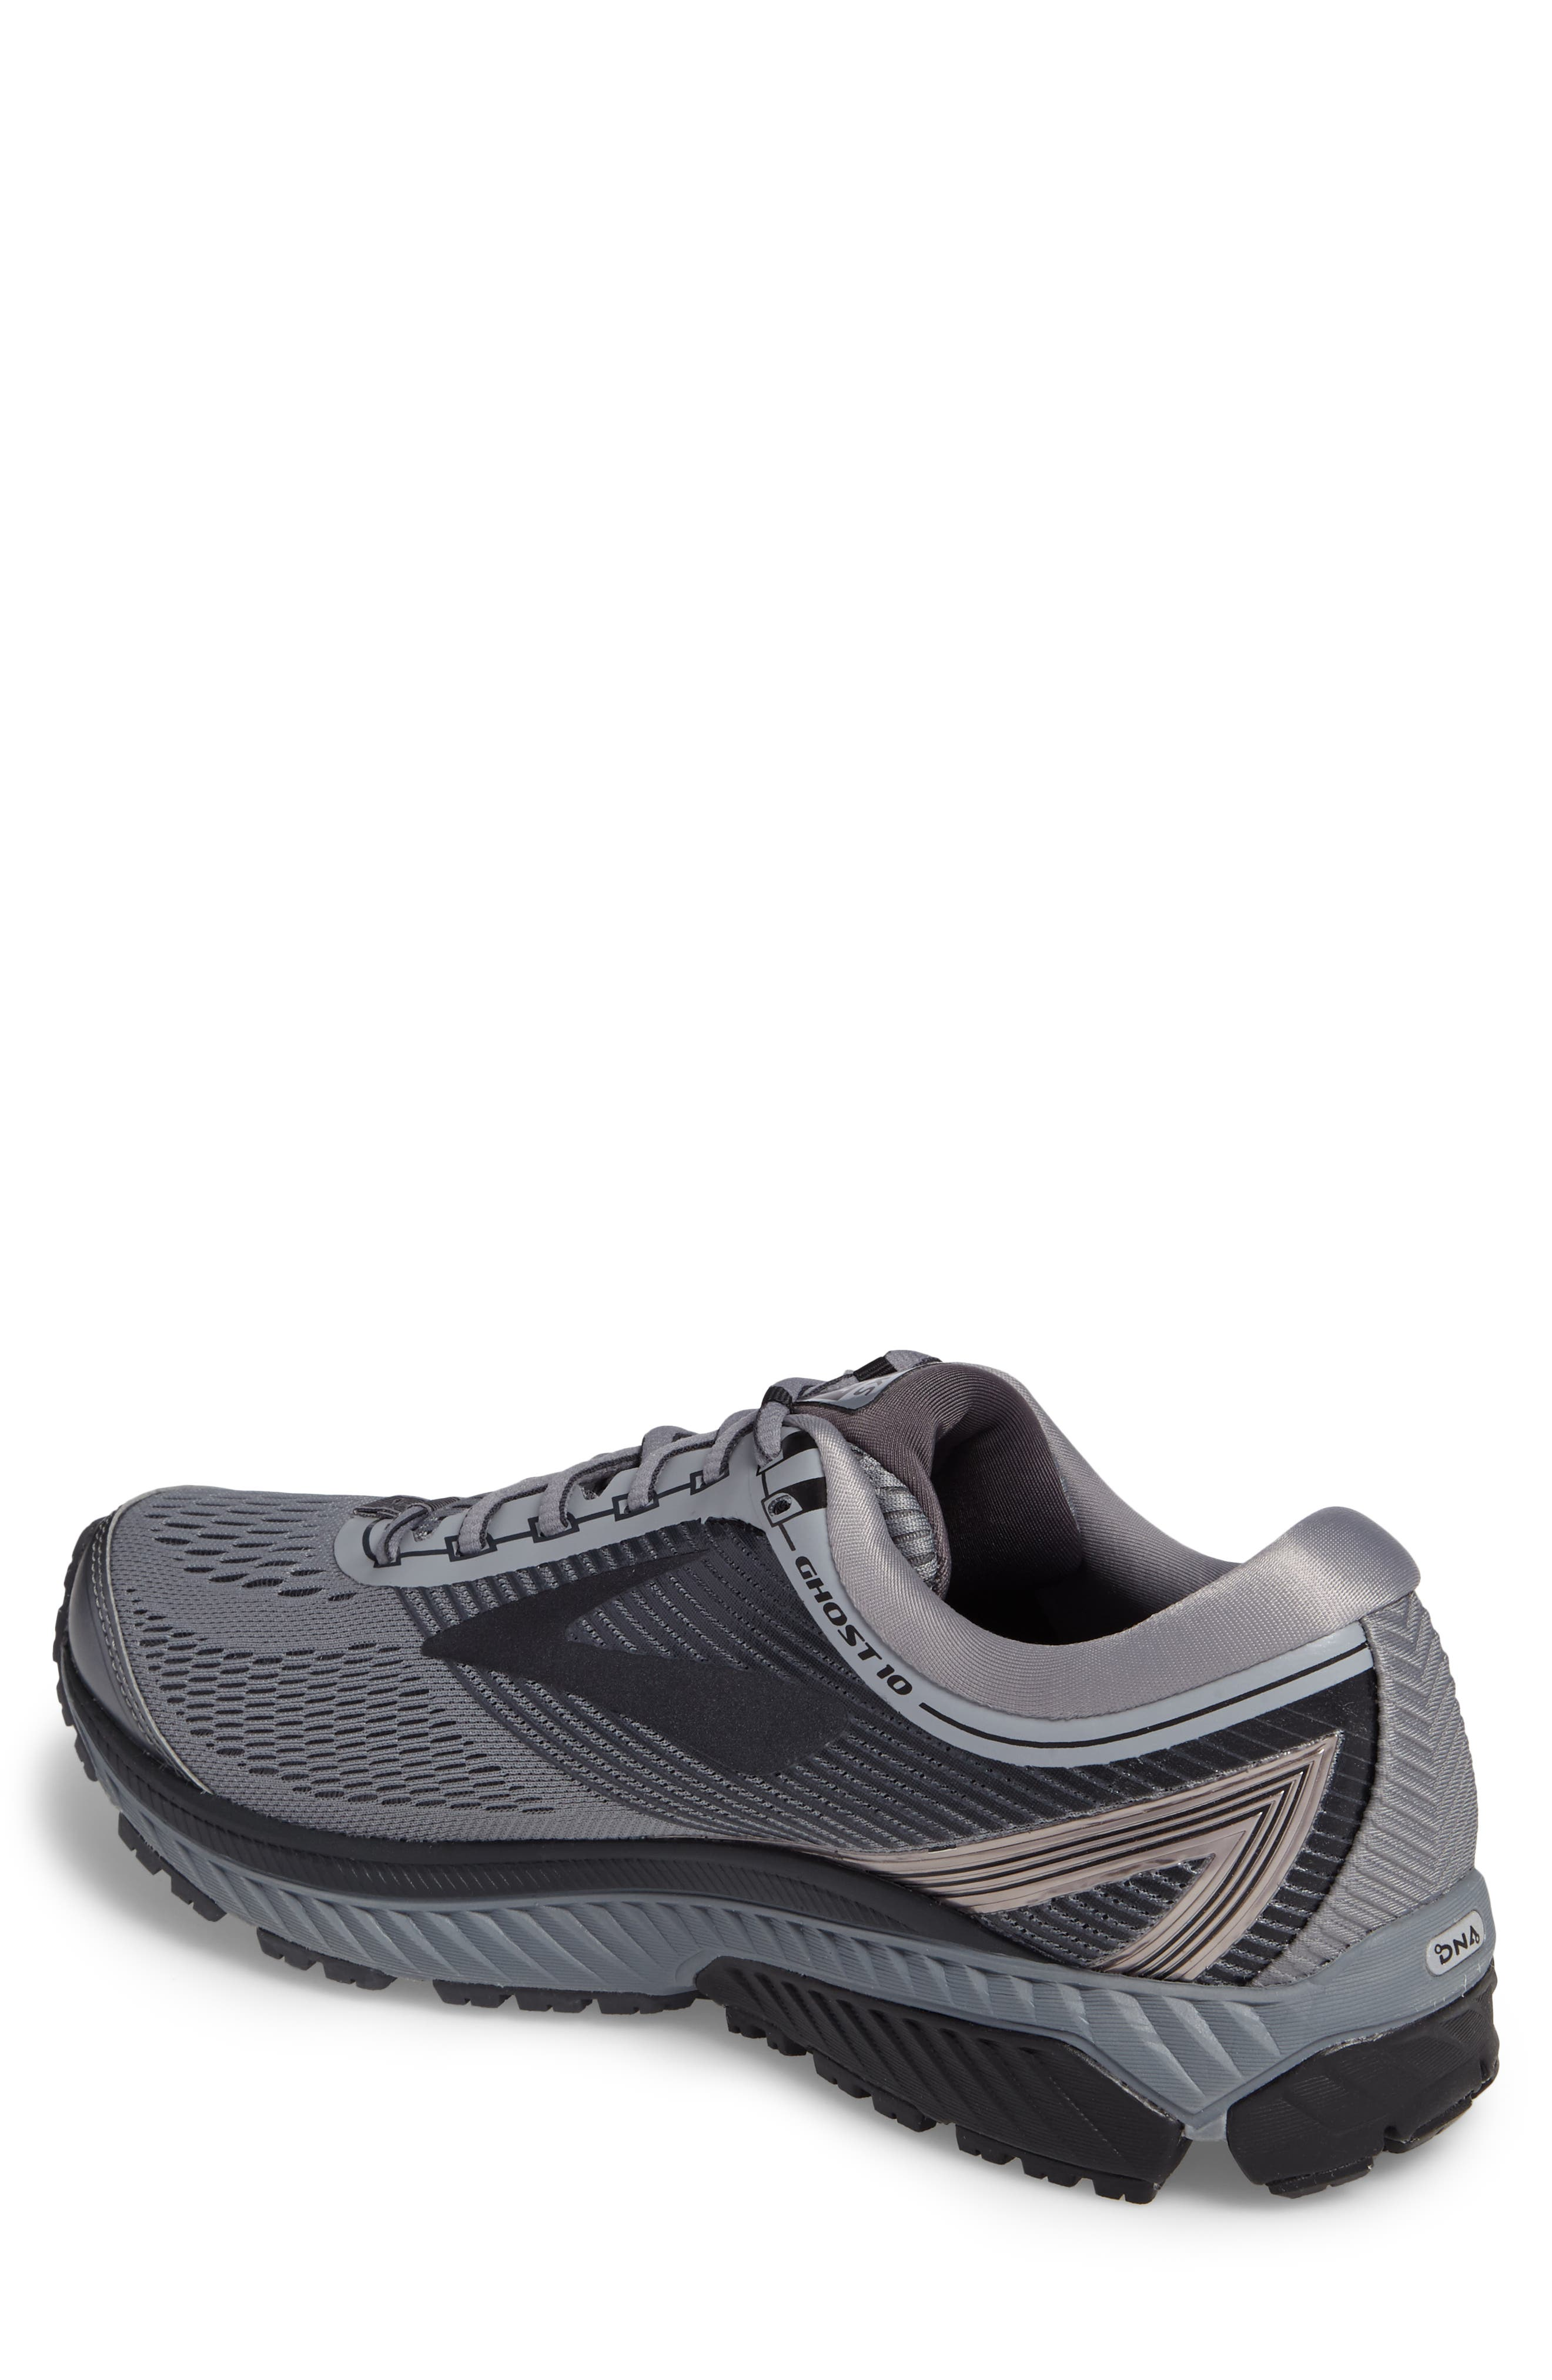 Ghost 10 Running Shoe,                             Alternate thumbnail 2, color,                             GREY/ METALLIC CHARCOAL/ EBONY